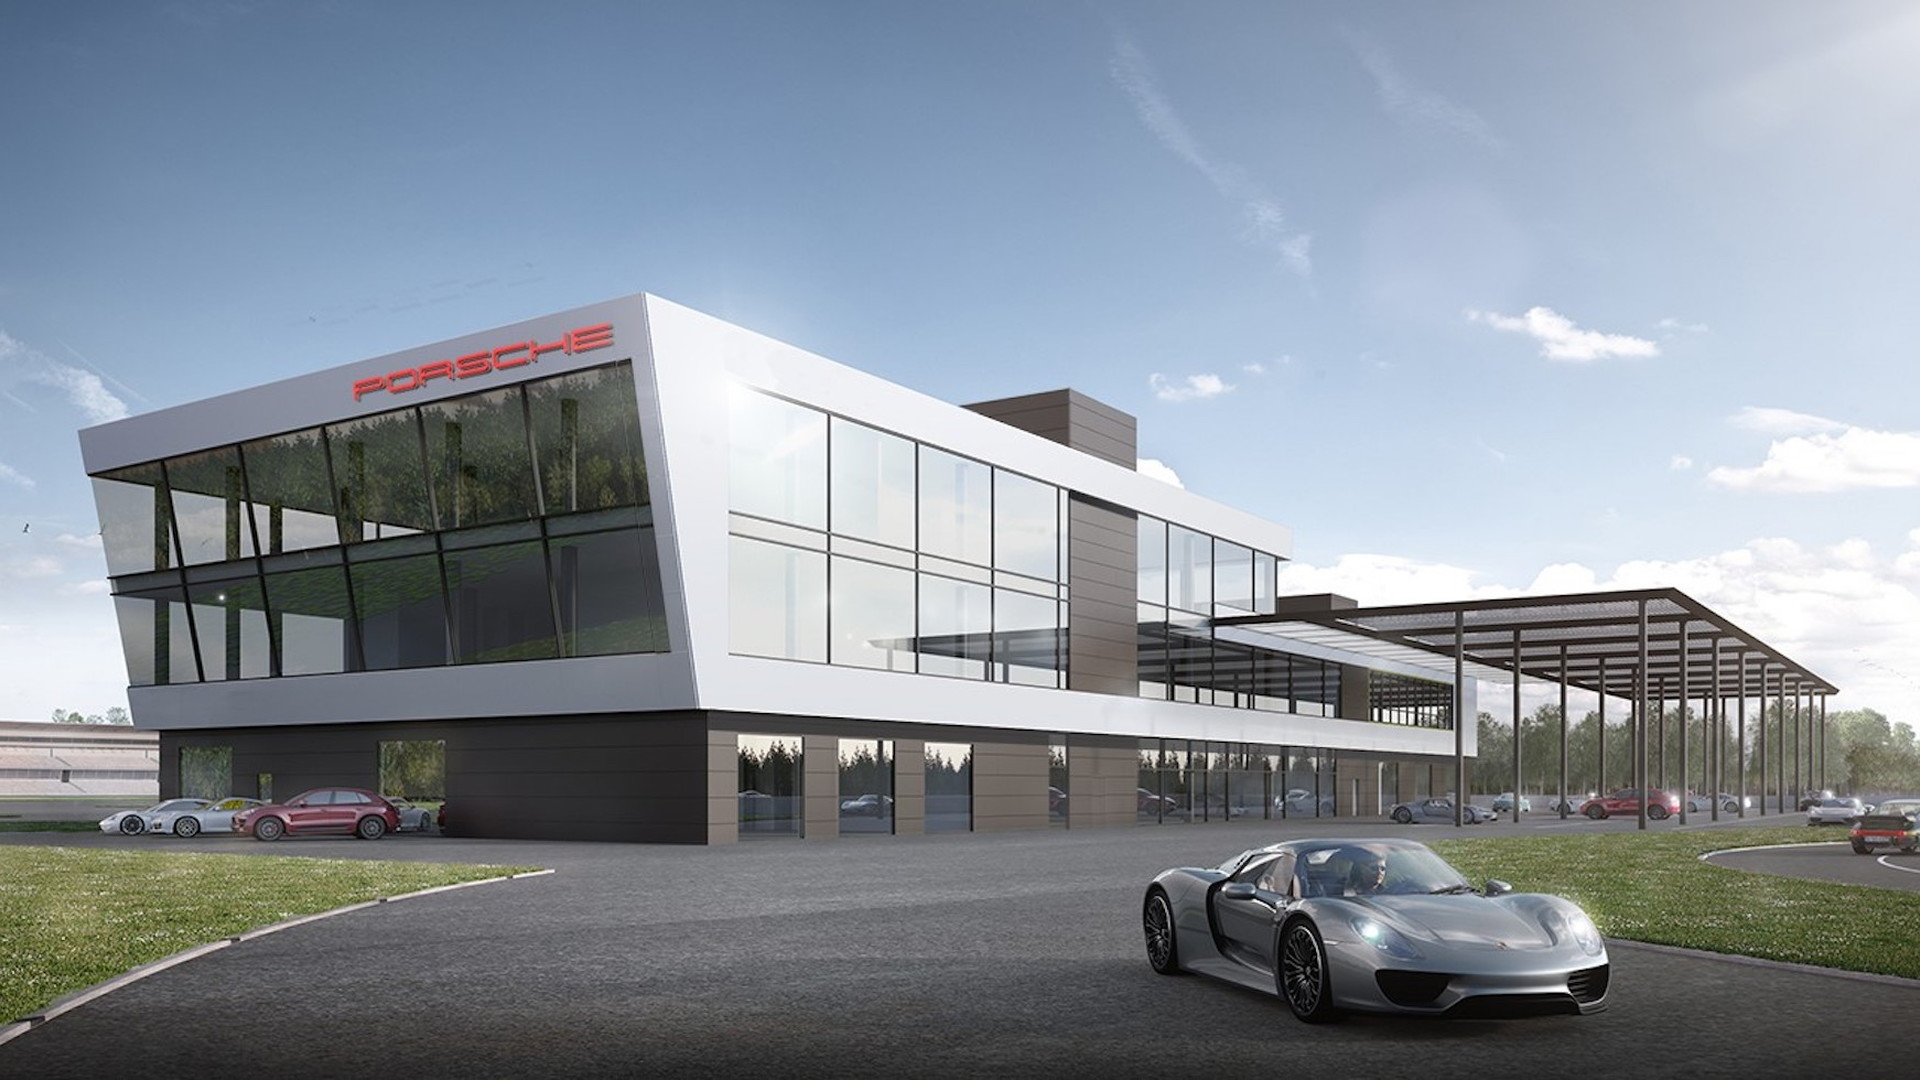 Porsche Hockenheimring experience center